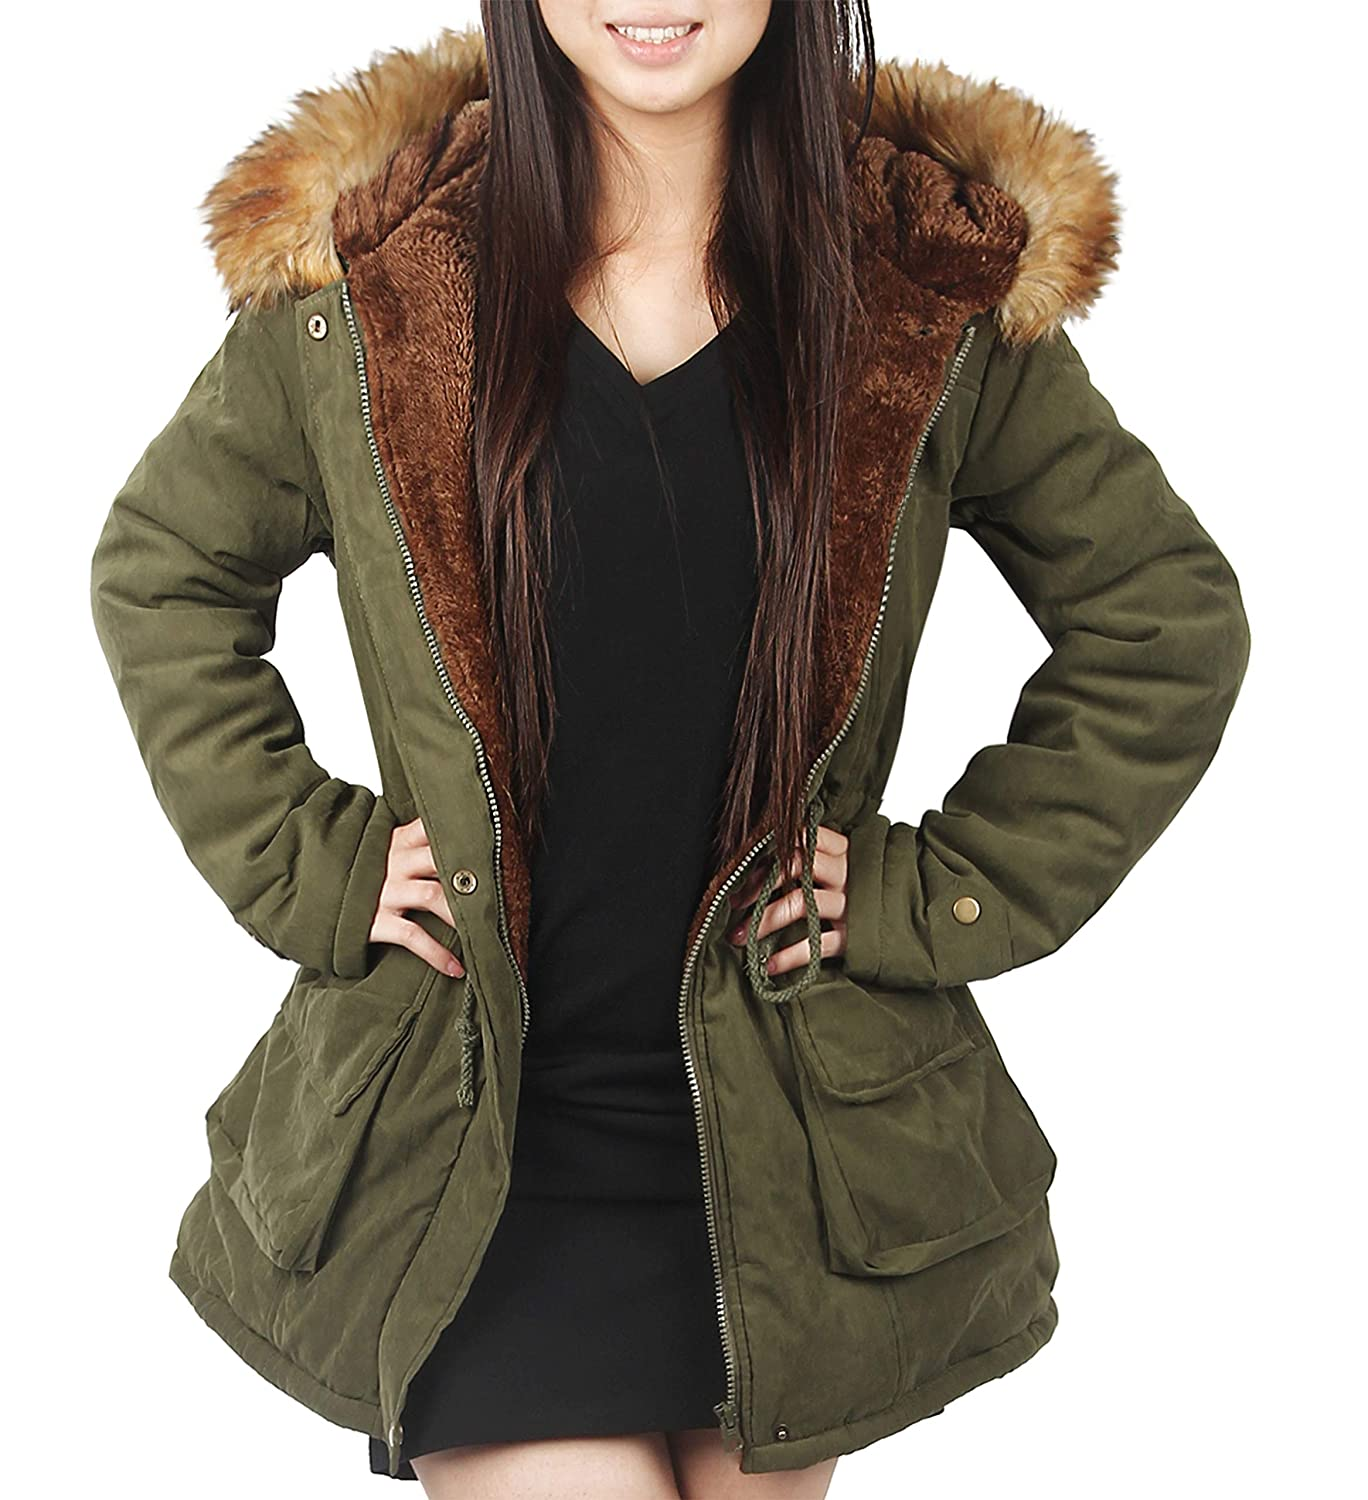 Amazon.com  4HOW Womens Hooded Parka Jacket Winter Coat Warm Faux Fur Parkas  Outdoor  Clothing 40a4c923a5